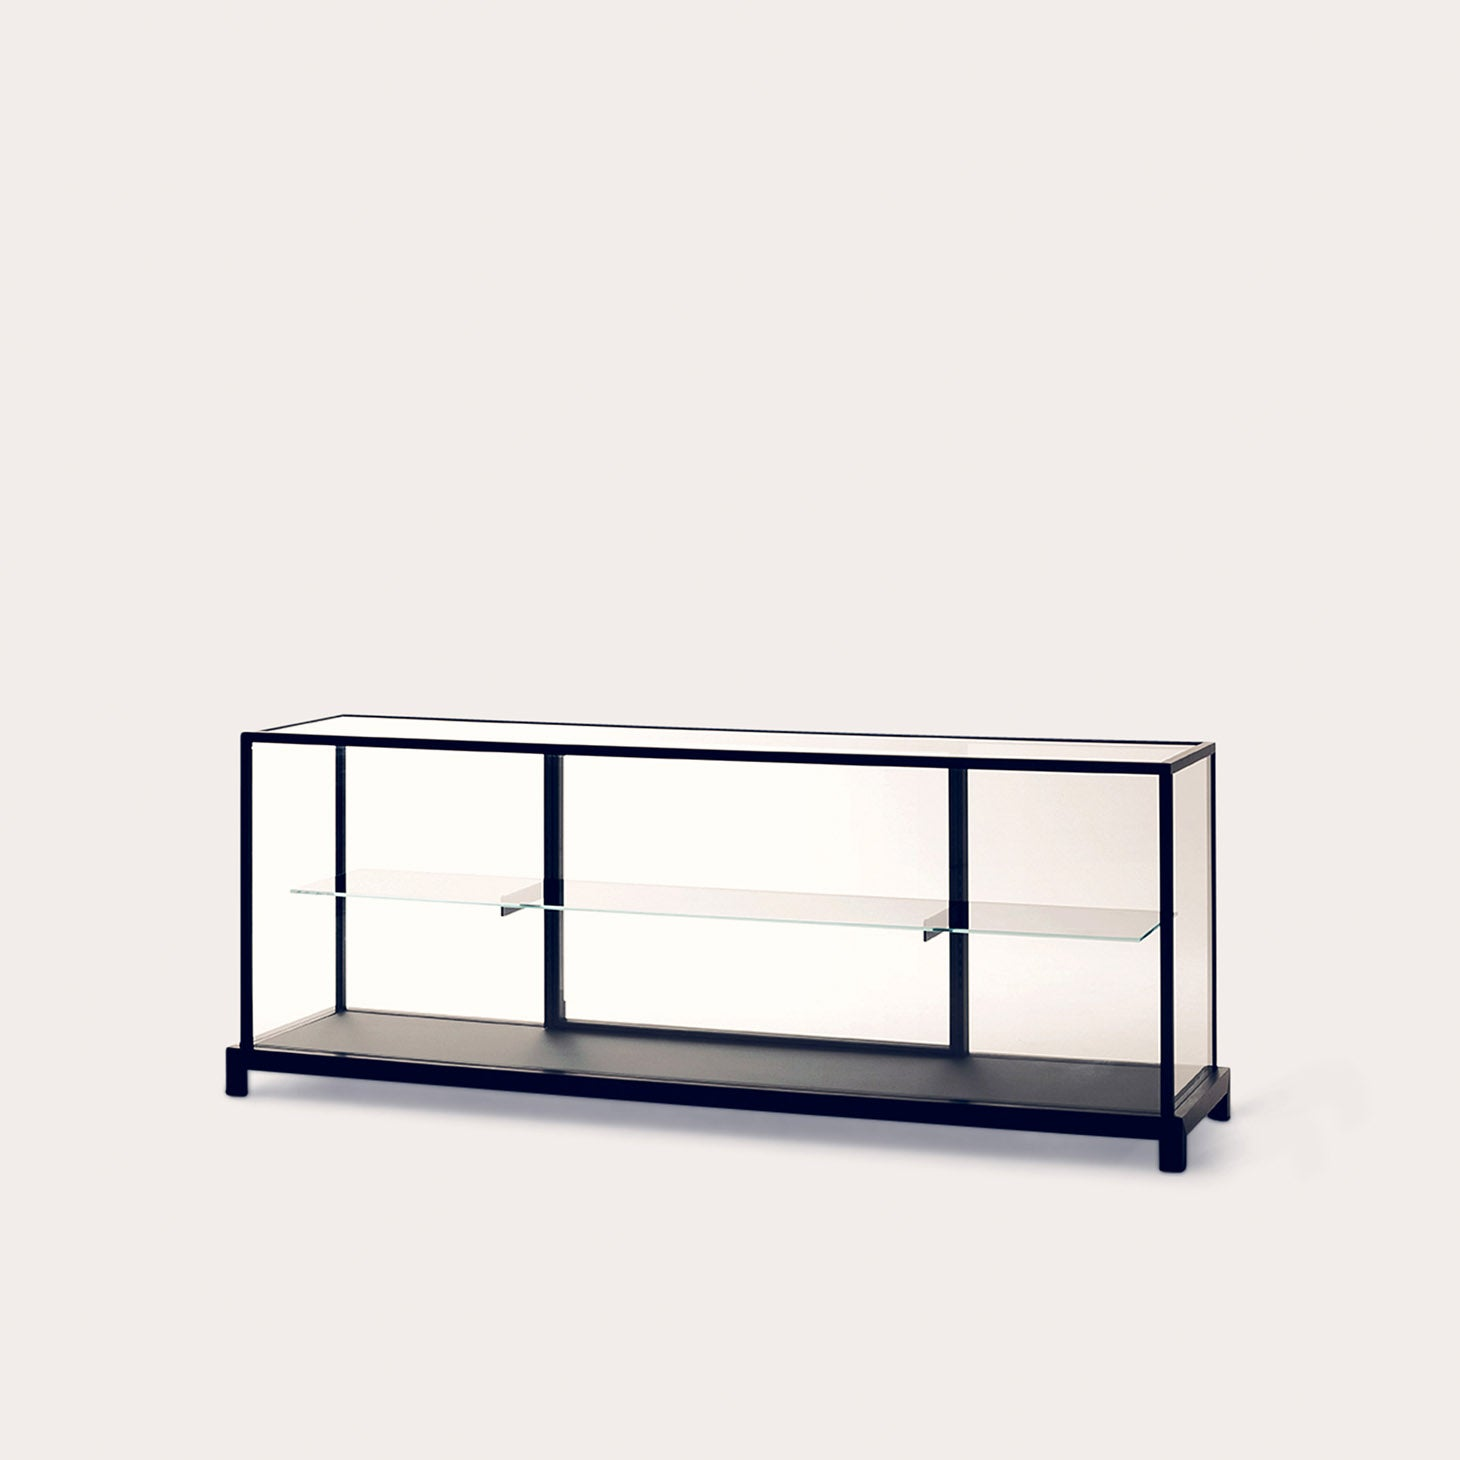 Wunderkammer Storage Piero Lissoni Designer Furniture Sku: 288-220-10023